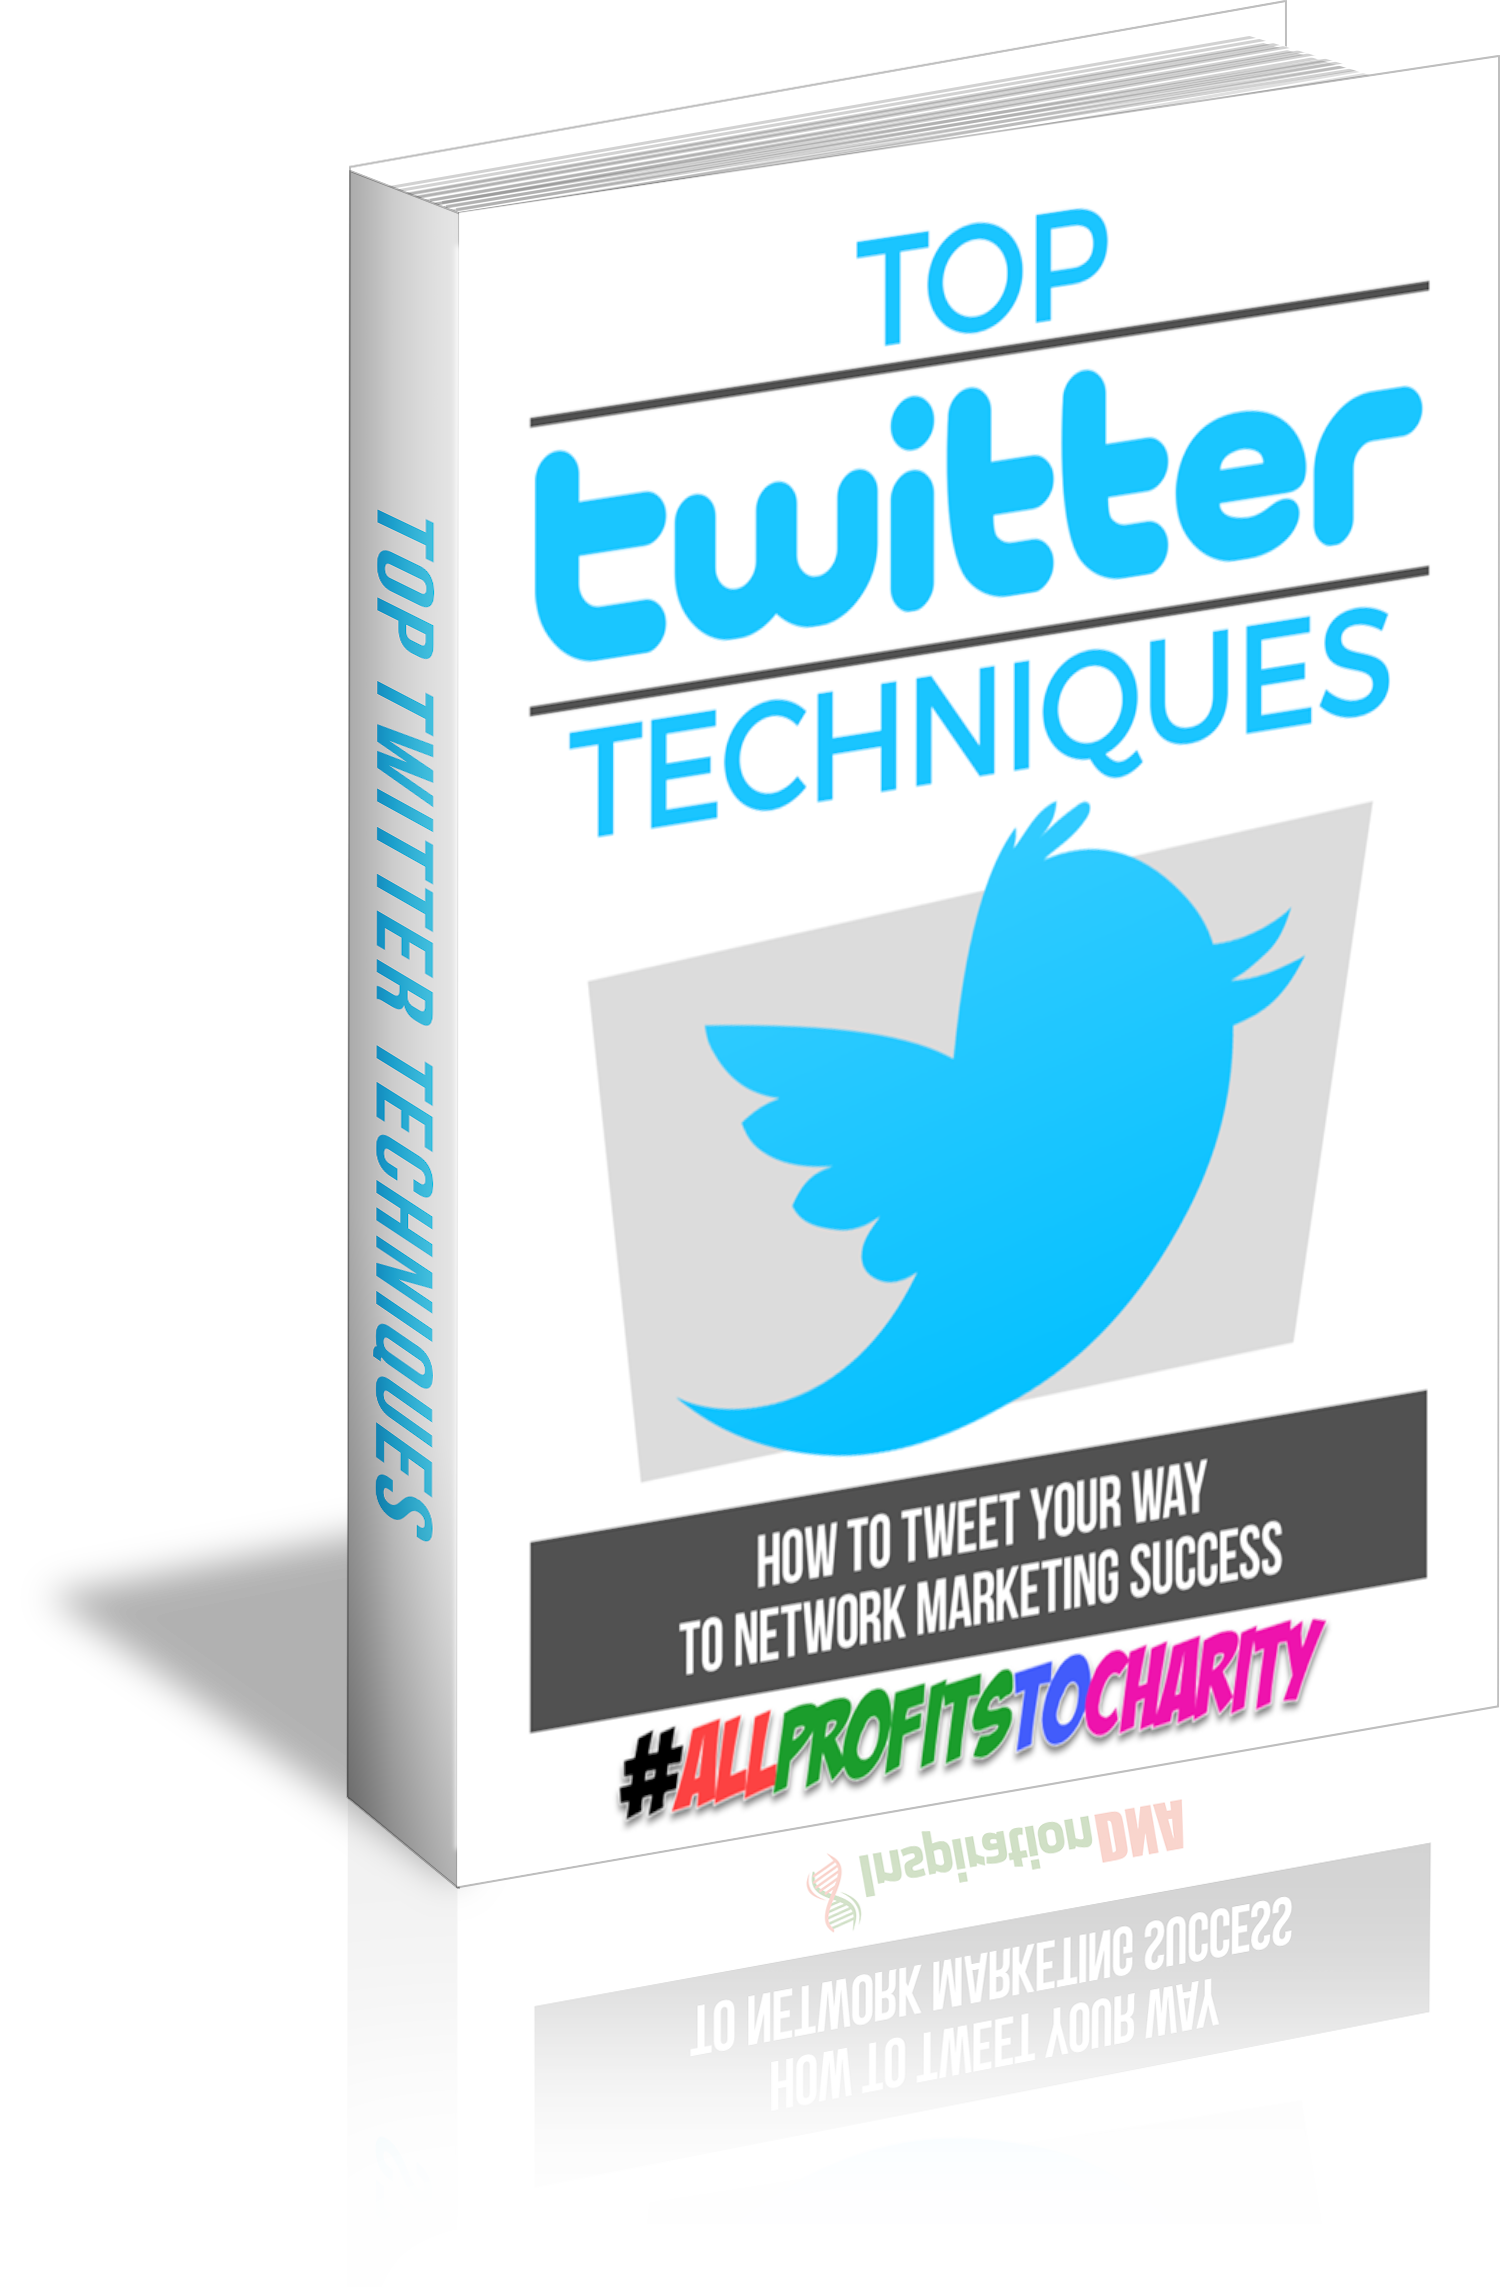 Top Twitter Techniques cover